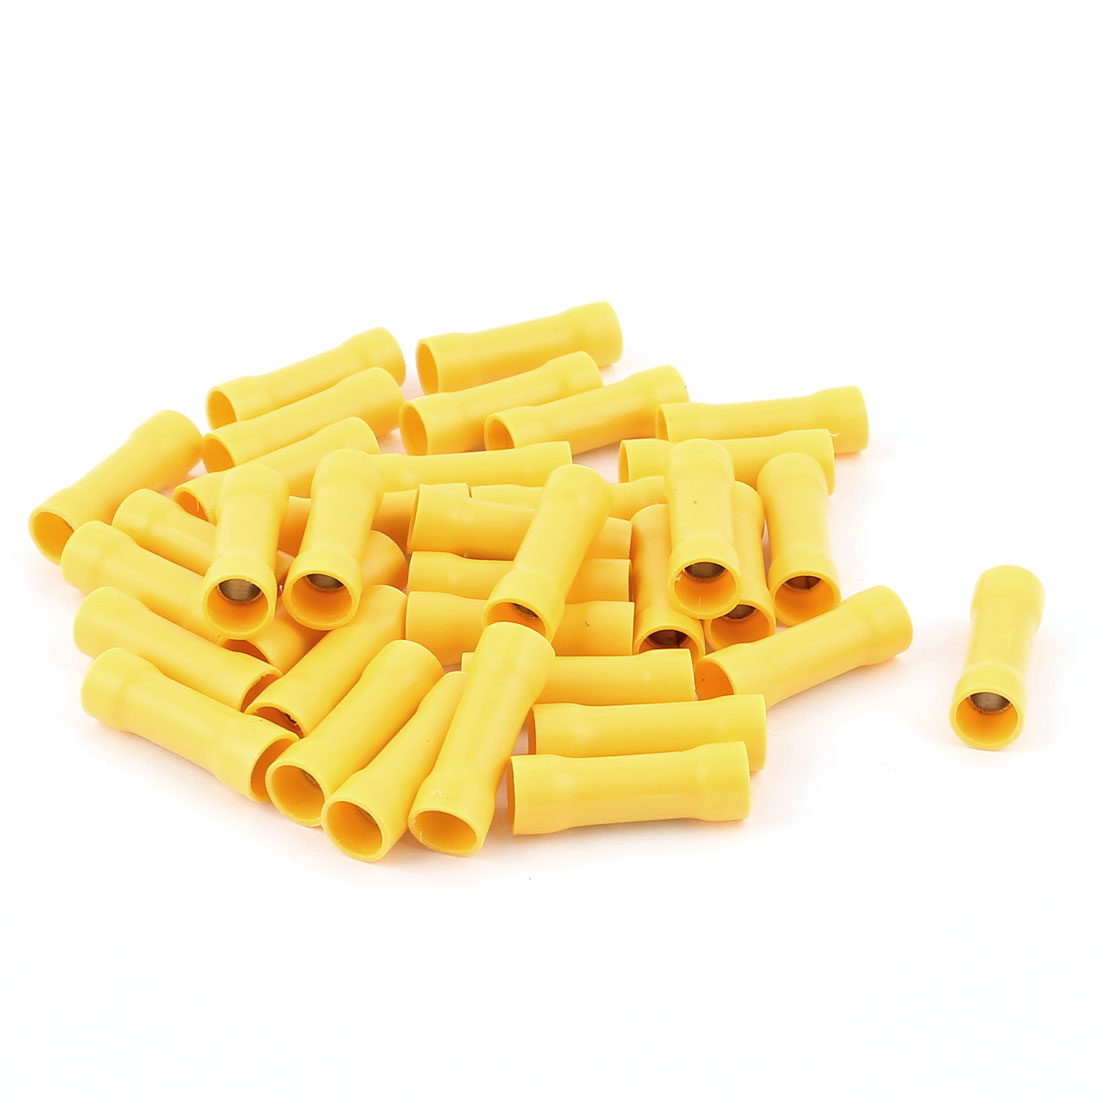 36Pcs Dual Ends Yellow Plastic Sleeve Pre Insulated Female Crimp Wiring Terminal Cable Connector for AWG12-10 Cable